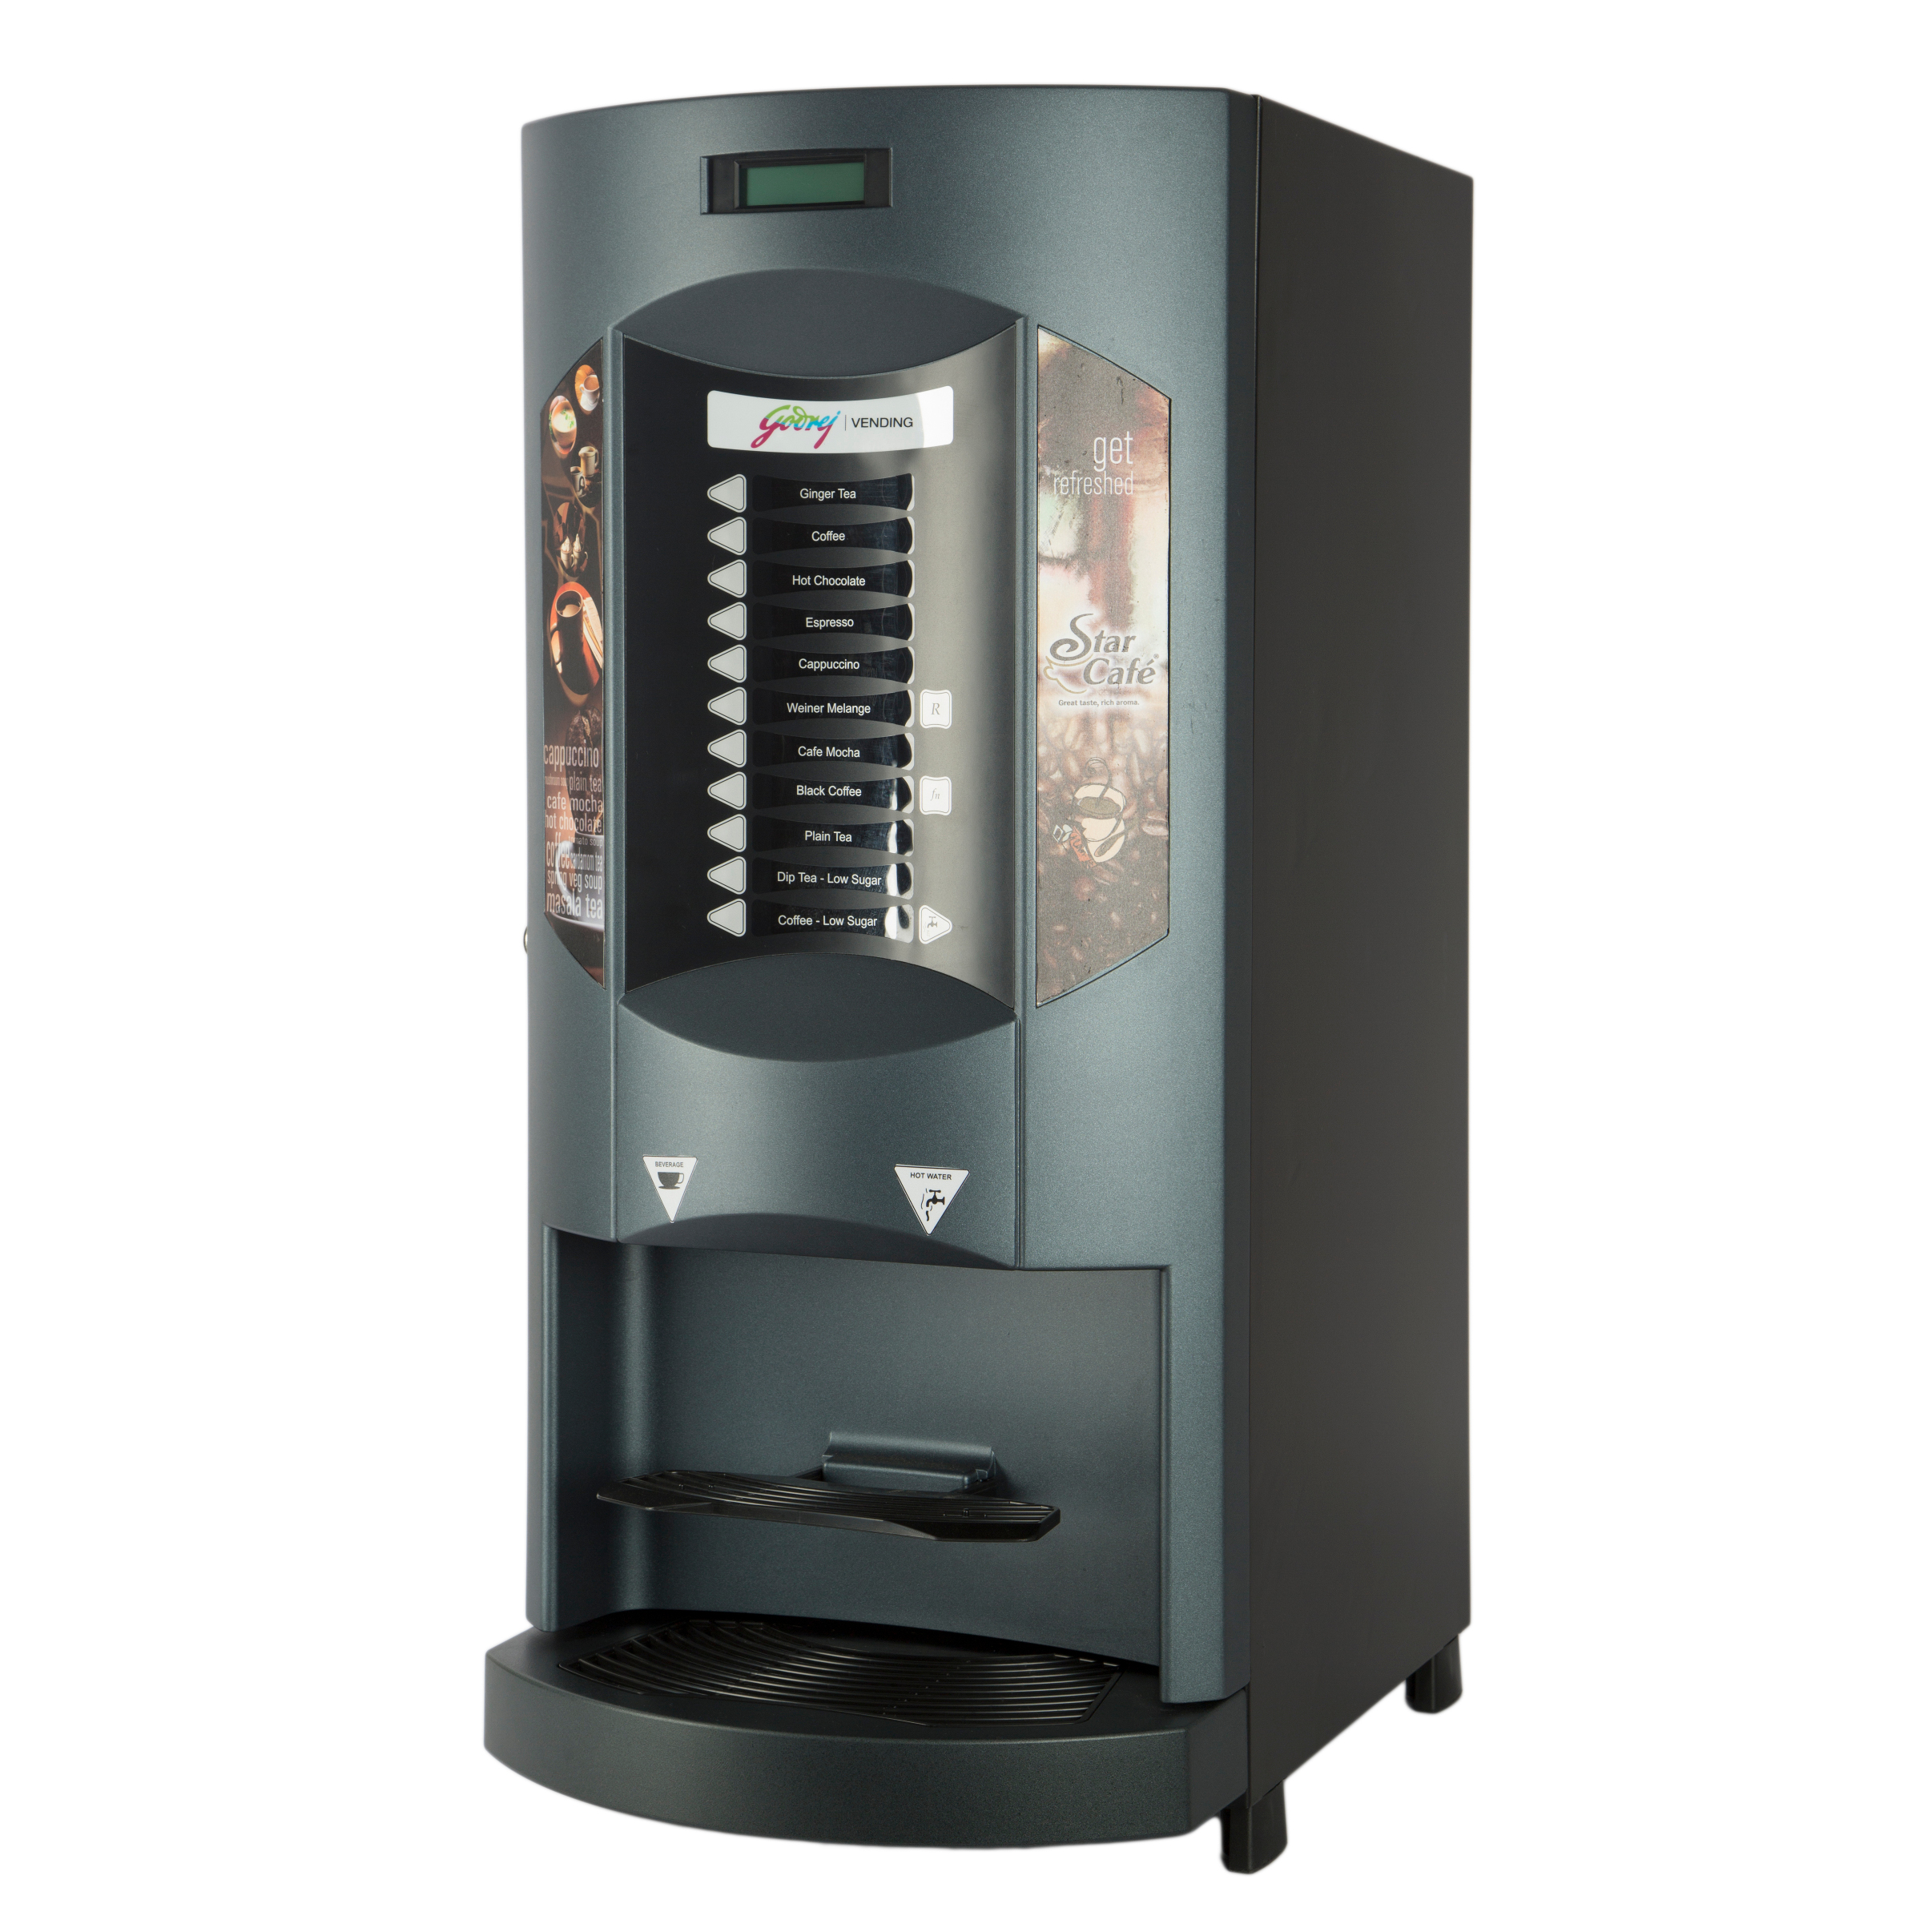 The Complete Guide To Coffee Vending Machine Prices